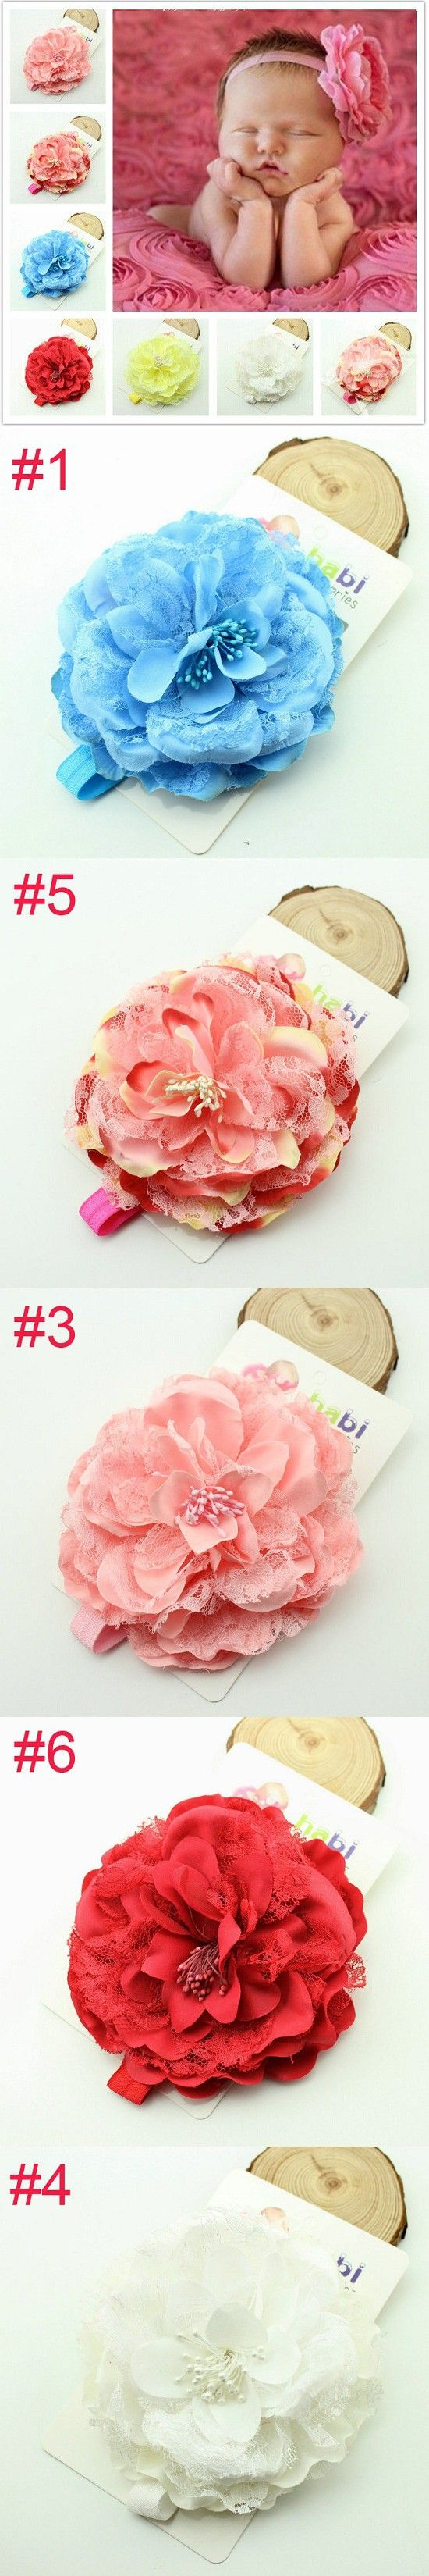 Pink Baby Headbands Big Flower Headband Lace hairband Infant Children hair accessories Photo Prop 12pcs/lot HB192